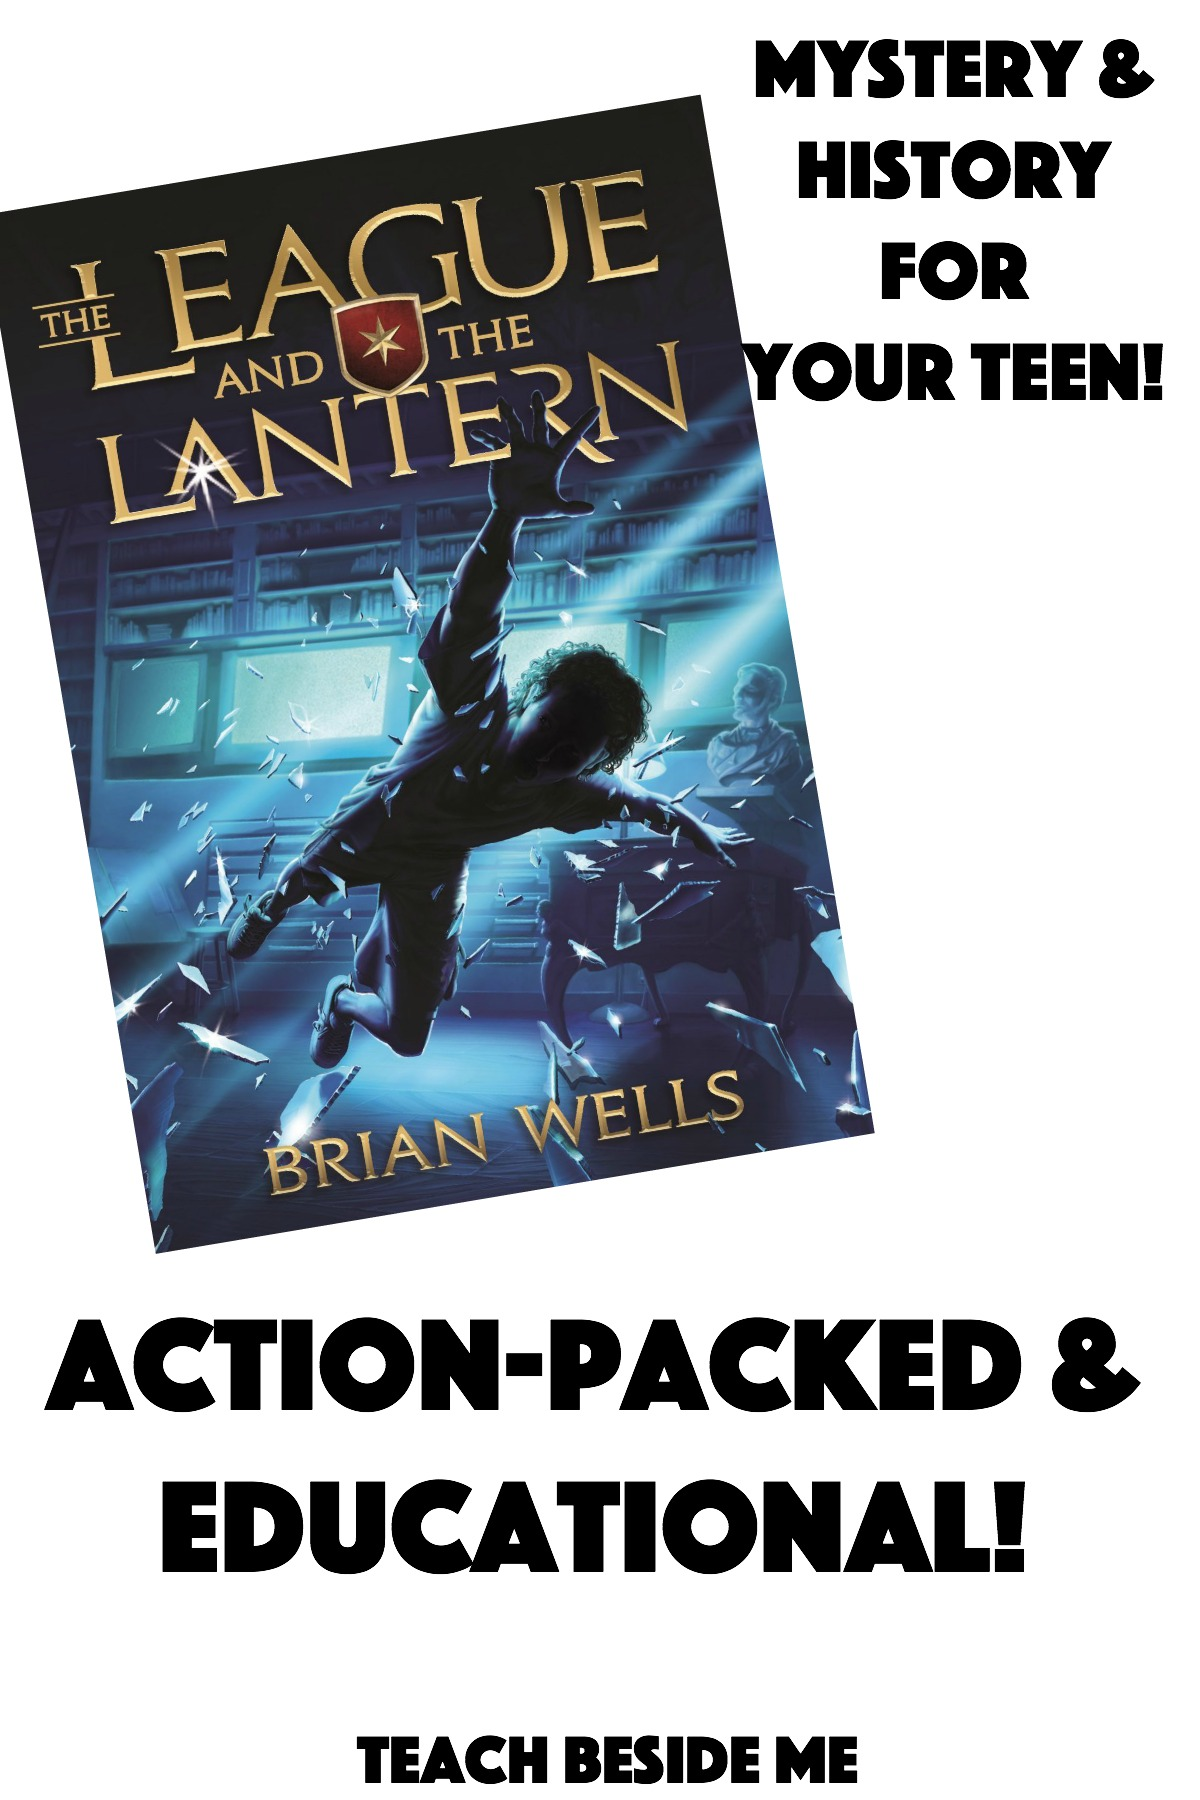 The League and the Lantern – Book Review